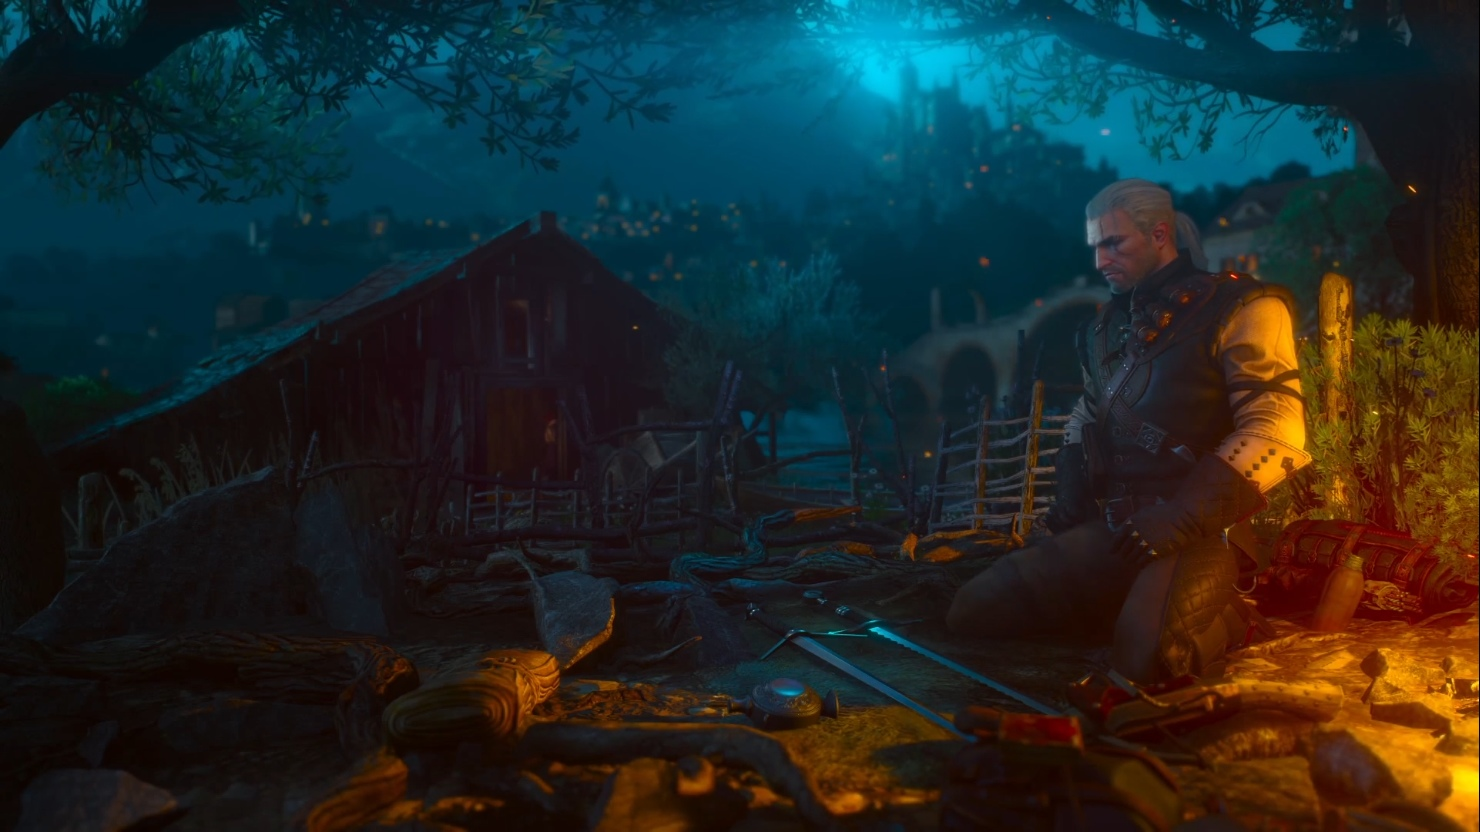 The Witcher 3 Animated Wallpaper By Smithjerry On Deviantart